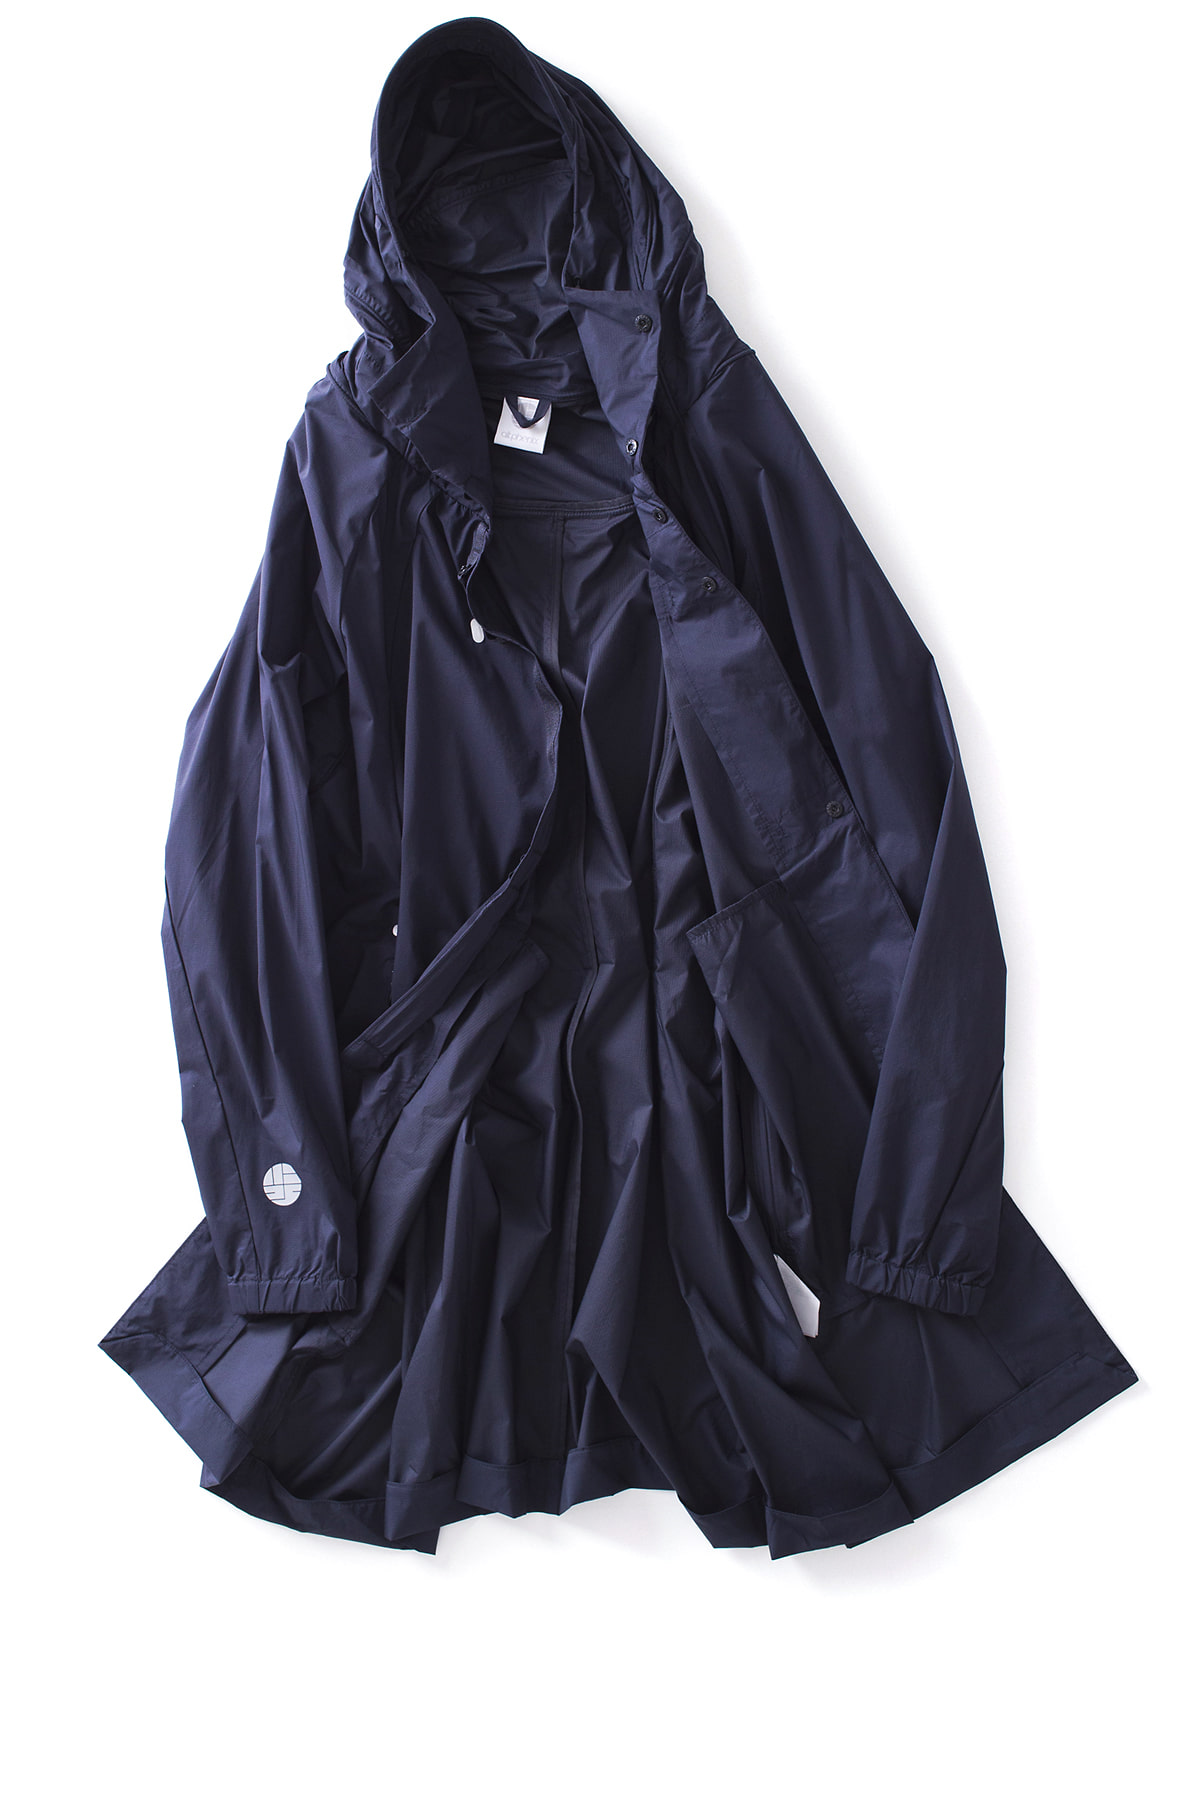 alk phenix : Dome Coat /EPIC (Navy)